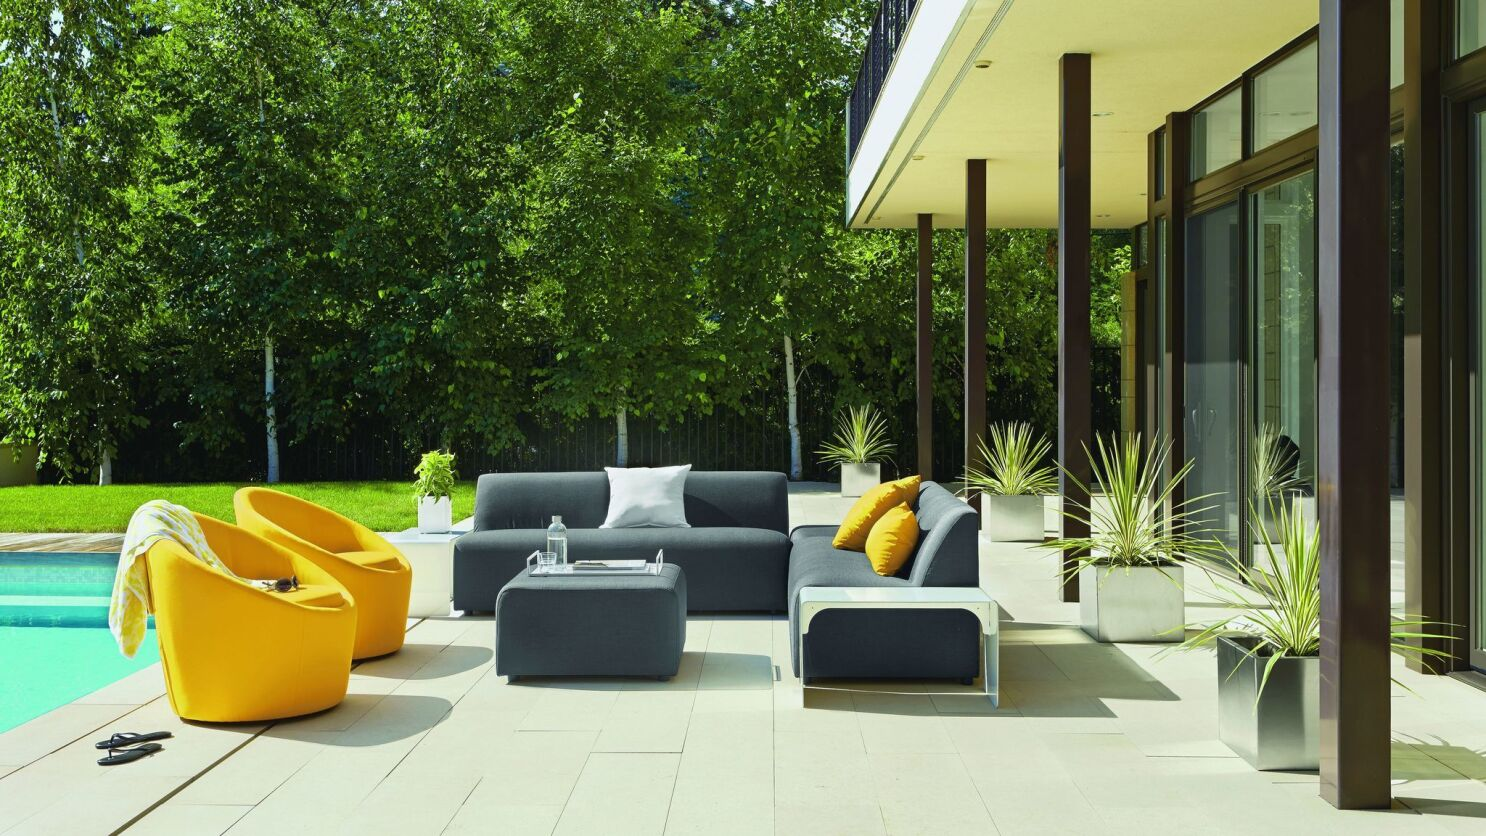 Take It Outside 8 Hot Trends In Outdoor Home Furnishing Los Angeles Times